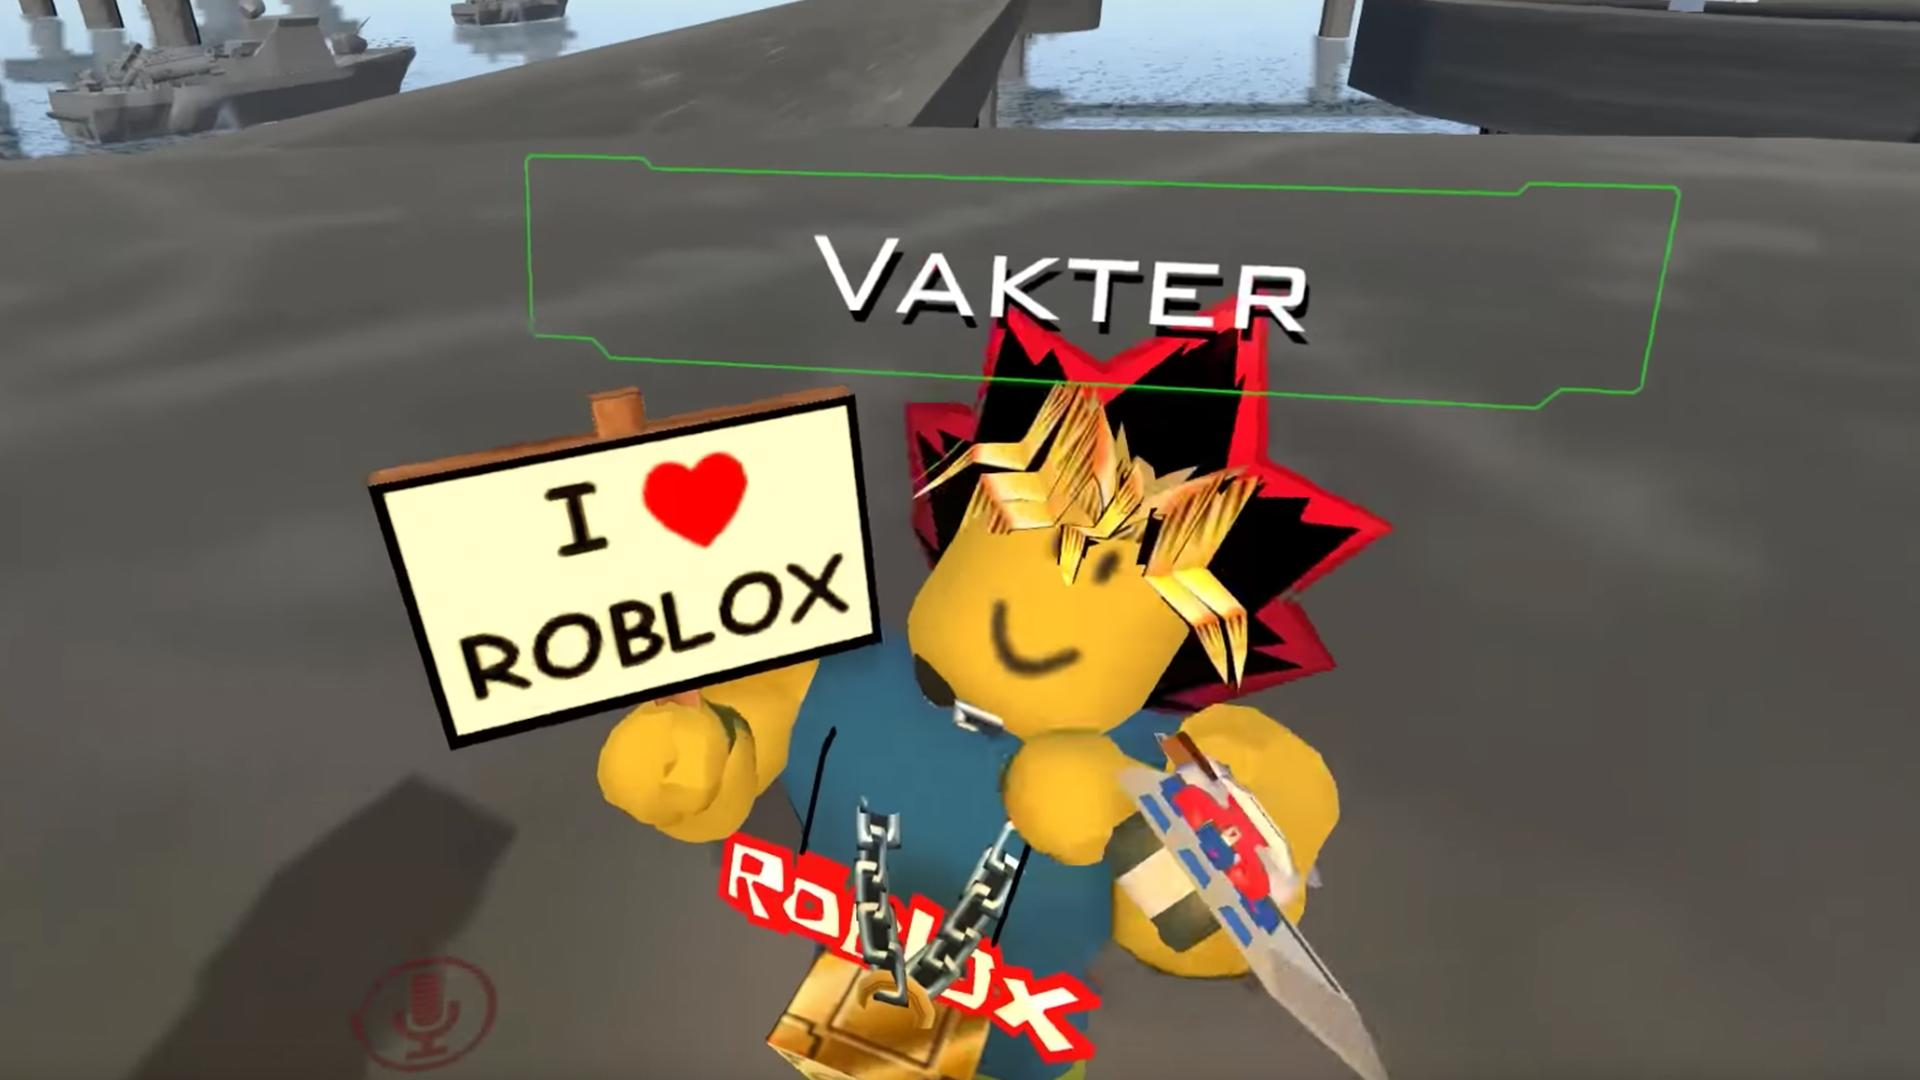 How To Make A Vrchat Avatar From Scratch